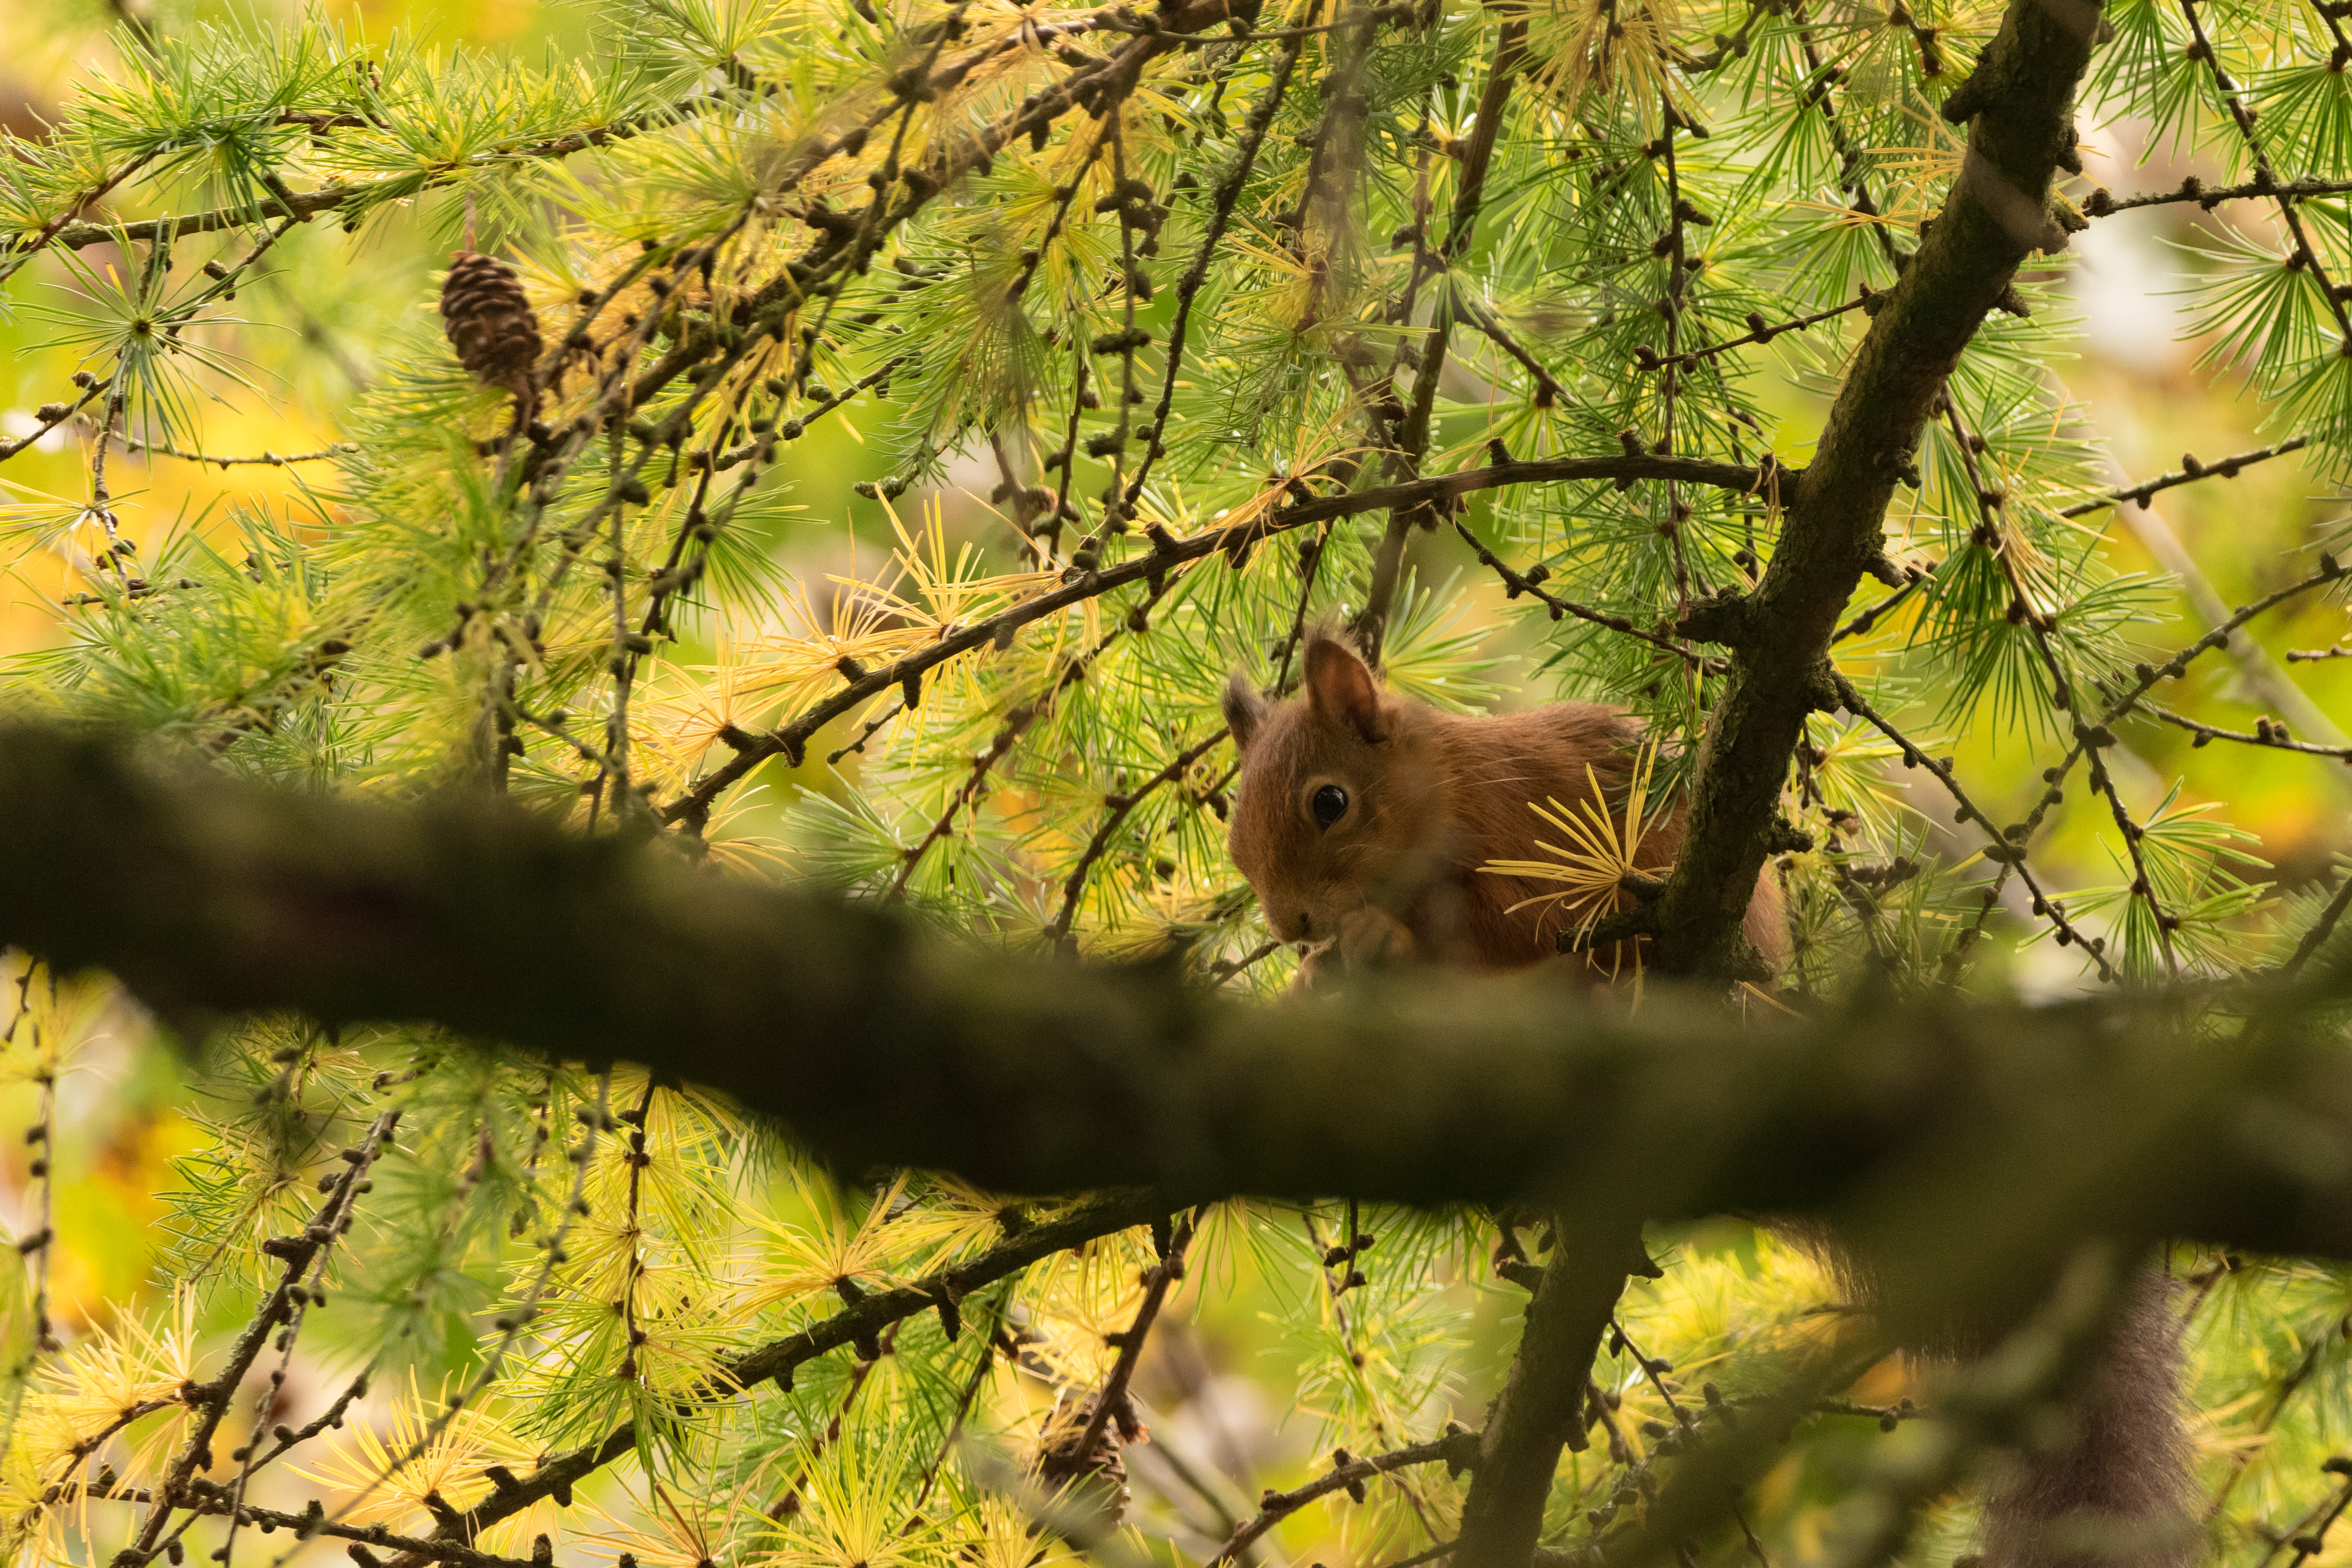 Red Squirrel Amongst the Branches